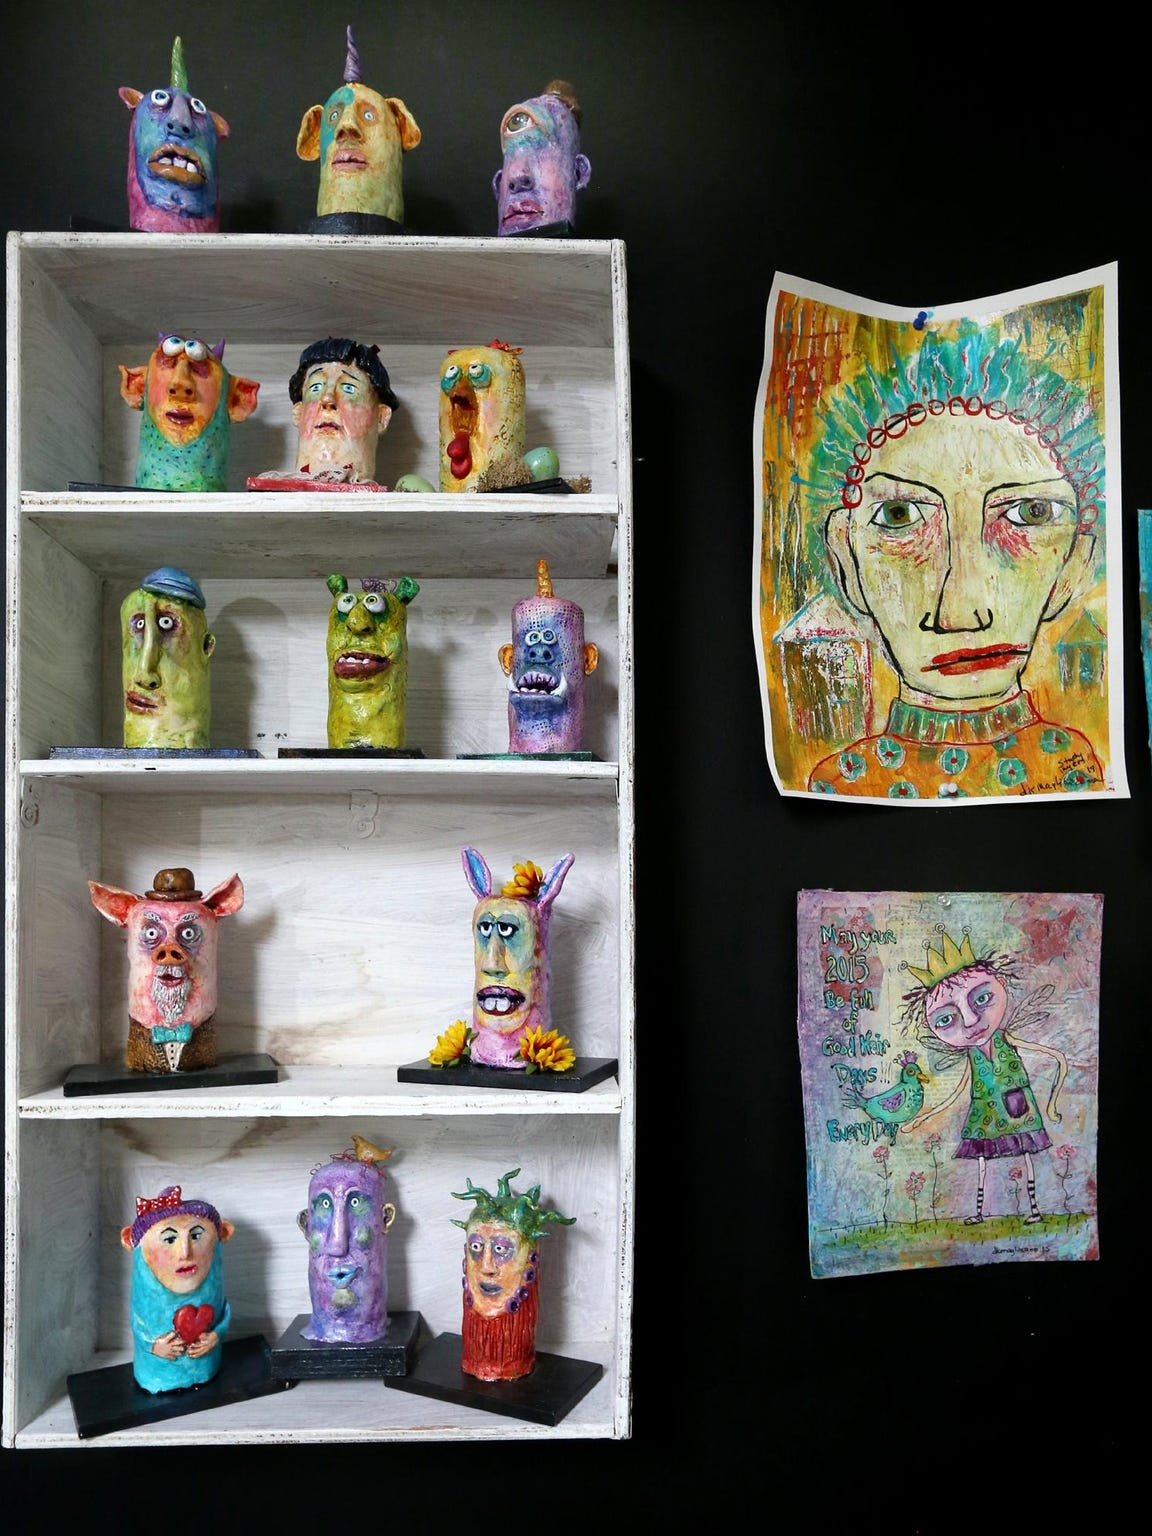 HELEN COMER/DNJ Dawna Magliacano?s ?Tubers? are characters sculpted around discarded toilet paper rolls, set on a shelf next to some of her whimsical illustrations. Dawna Magliacano's 'Tubers' are characters sculpted around discarded toilet paper rolls, set on a shelf next to some of her whimsical illustrations.